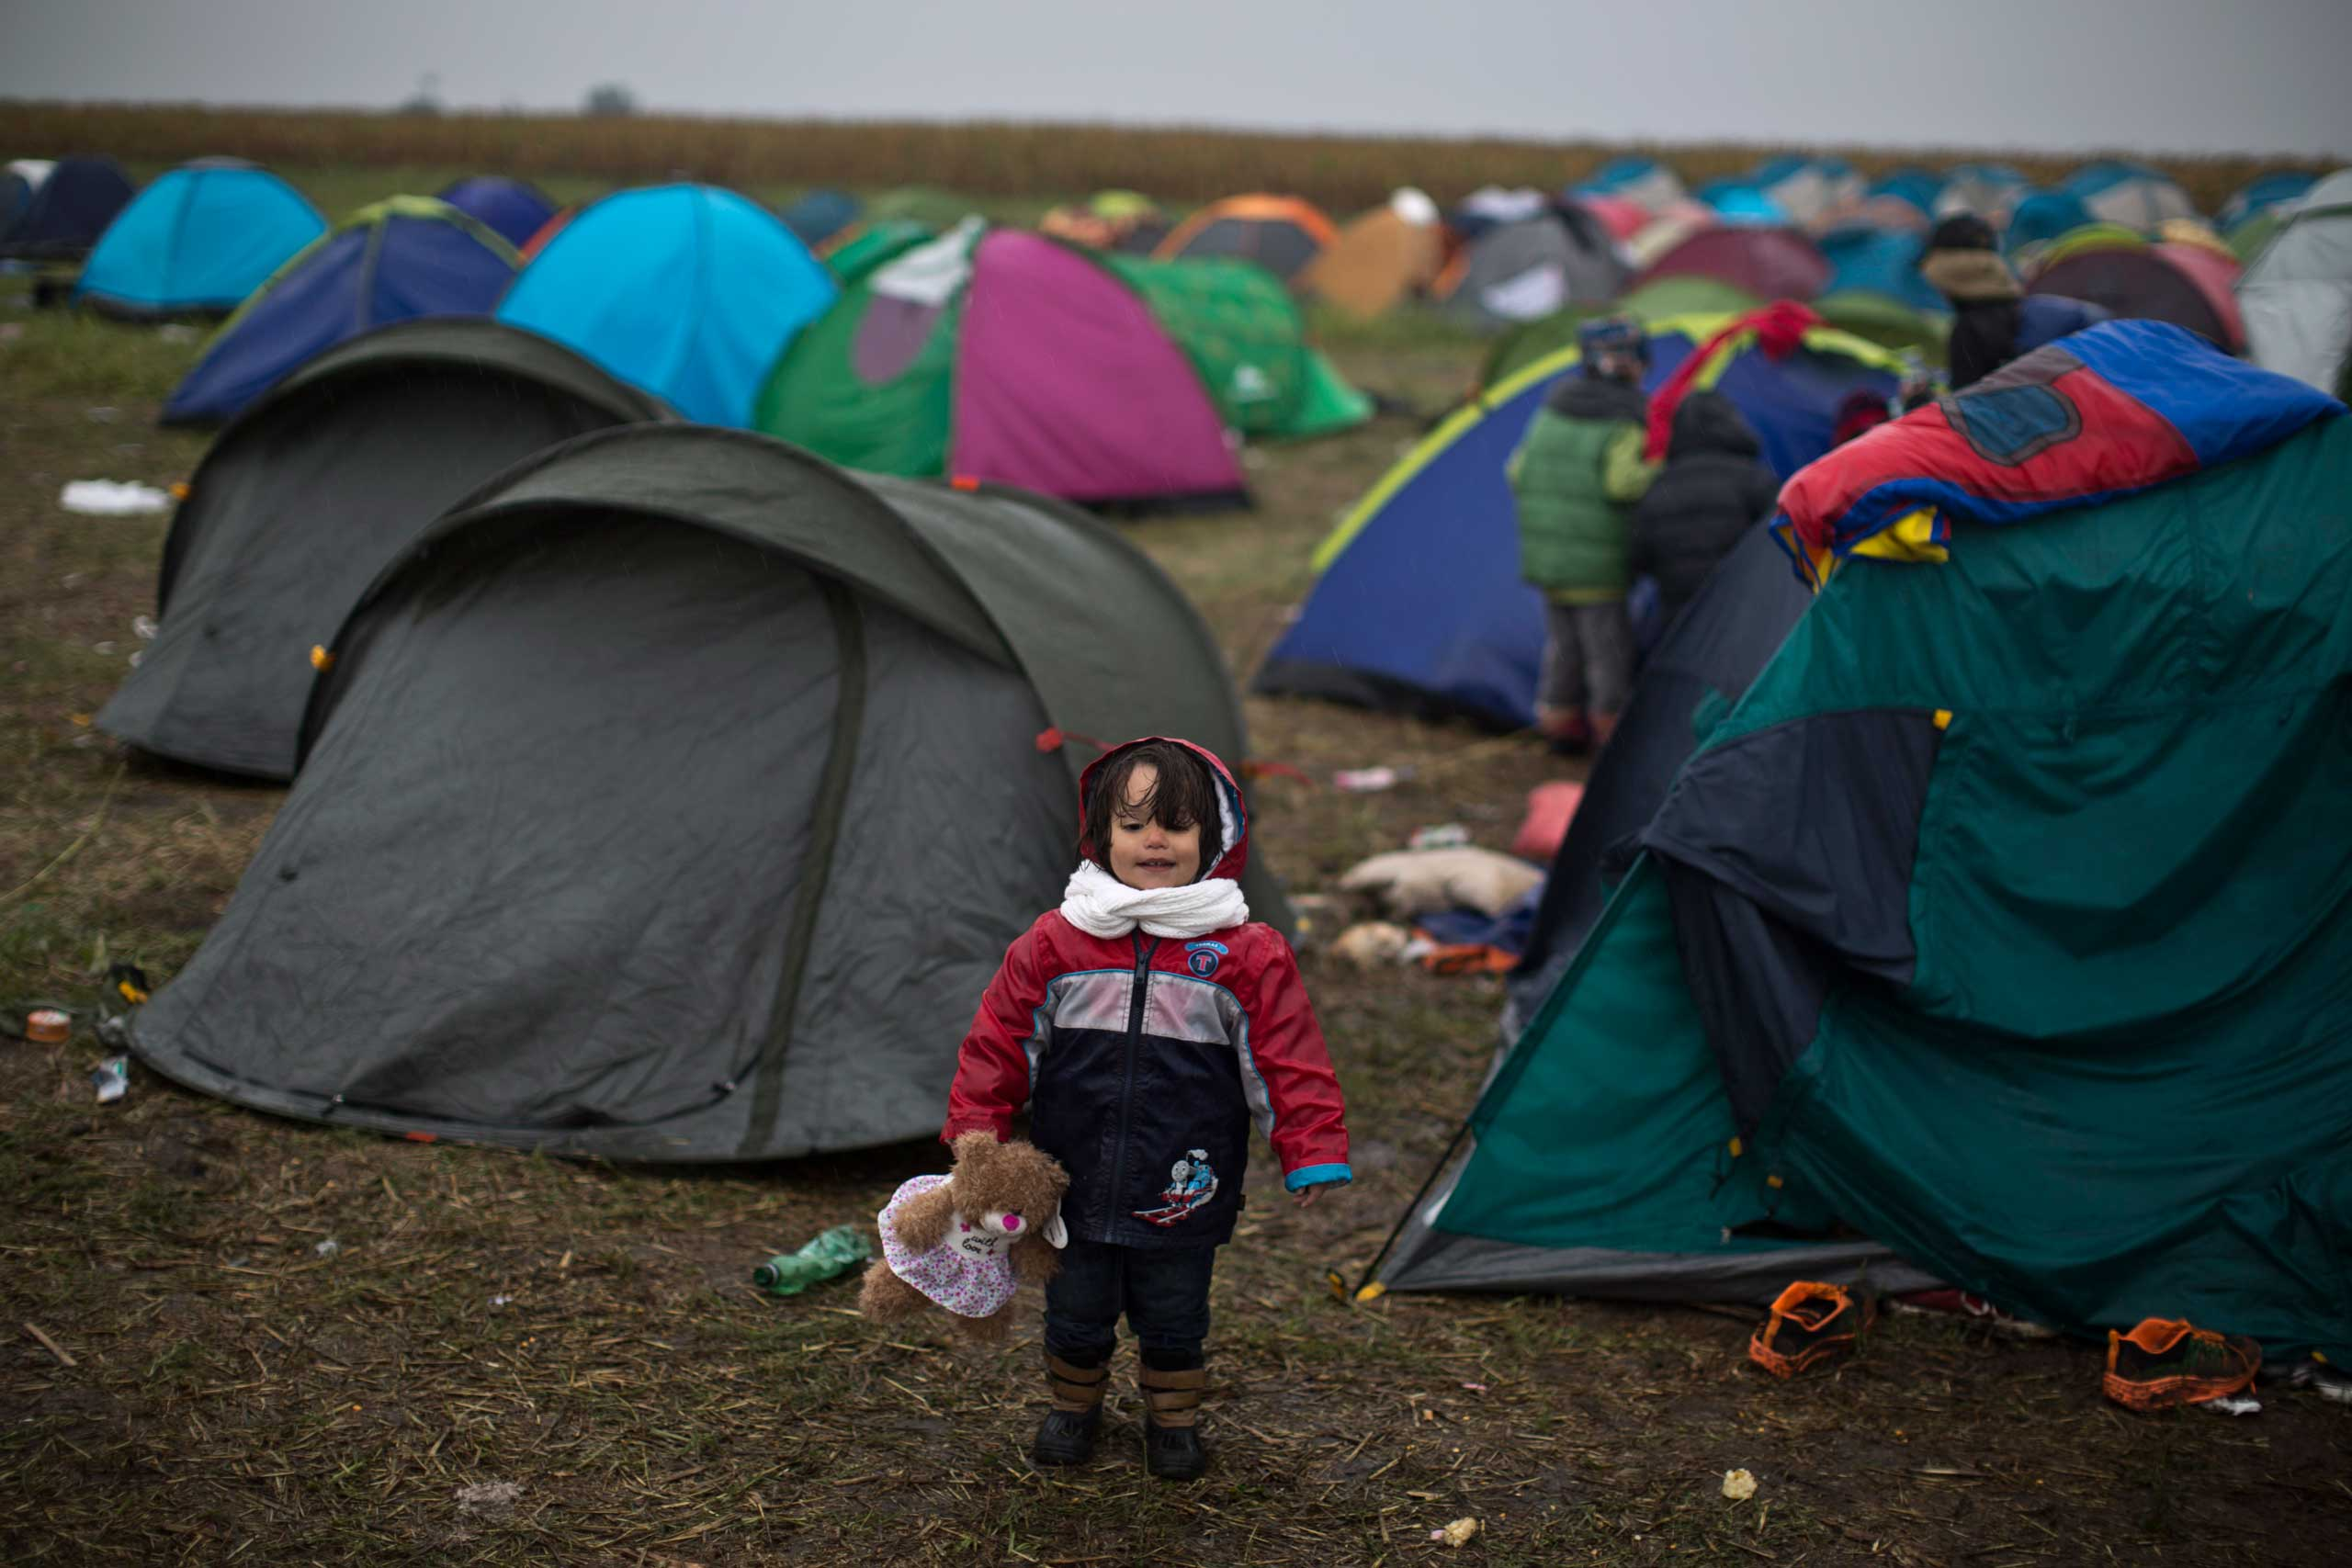 Syrian refugee child Jana Makkiyeh, 3, whose family comes from Damascus, Syria, holds a teddy bear while standing near her family's tent at a makeshift camp for asylum seekers in Roszke, on Sept. 10, 2015.